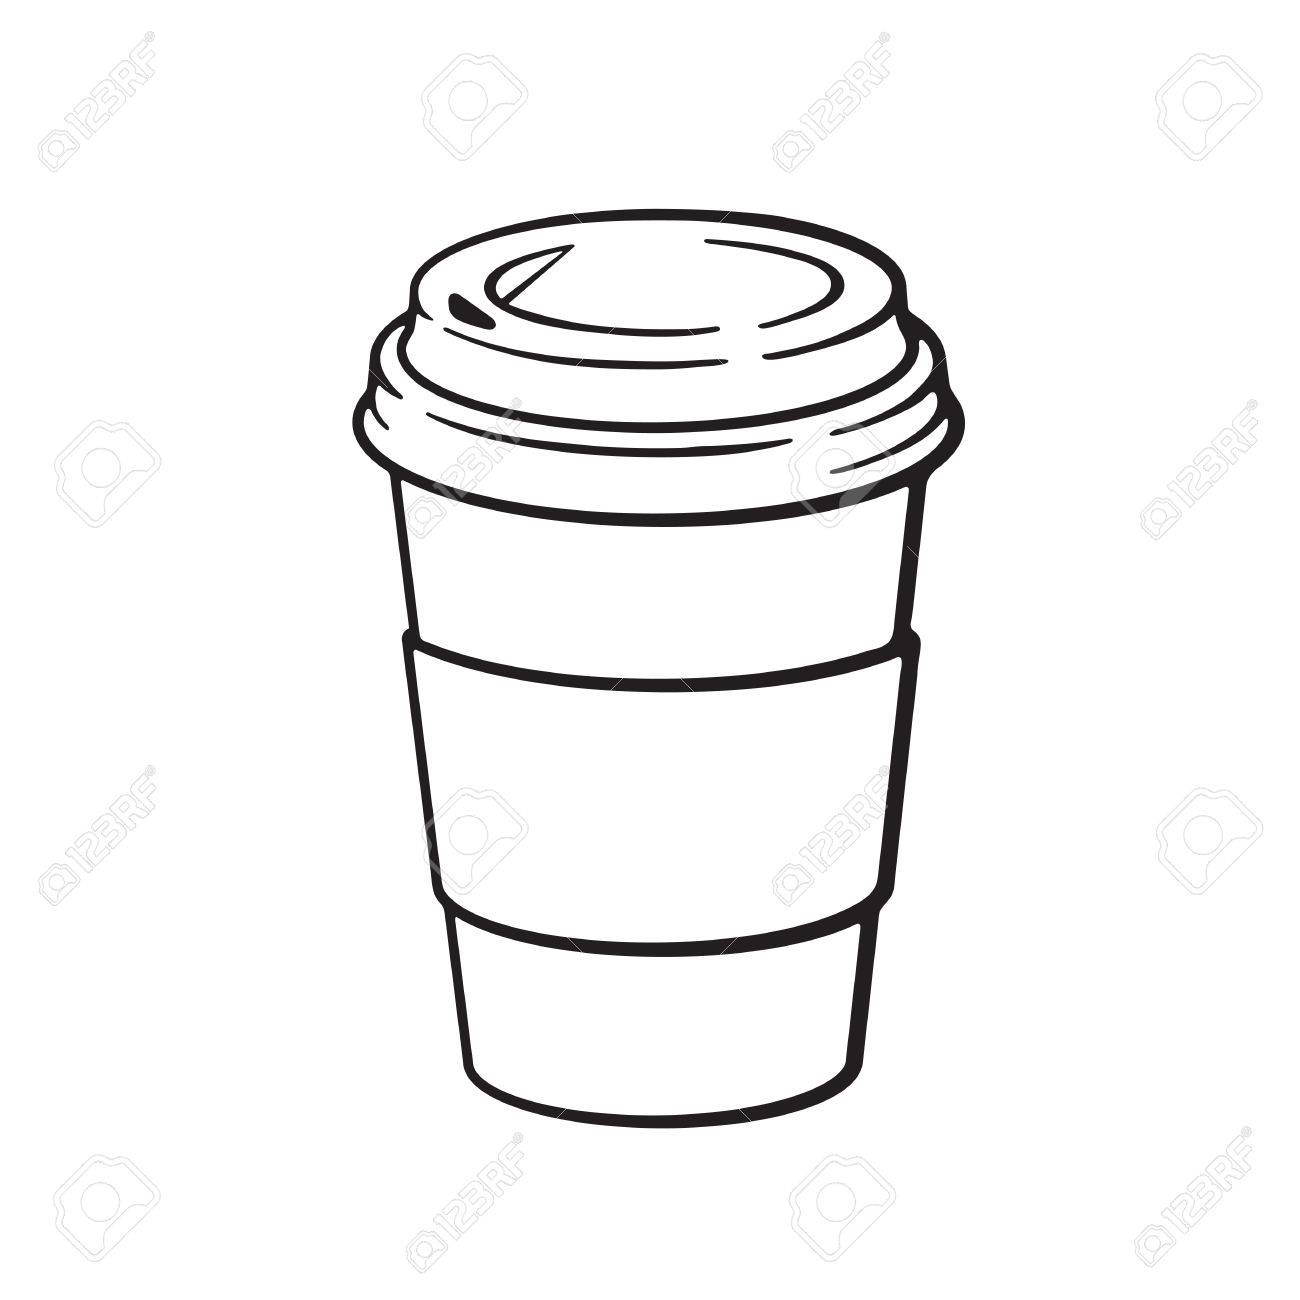 Cup Line Drawing At Getdrawings